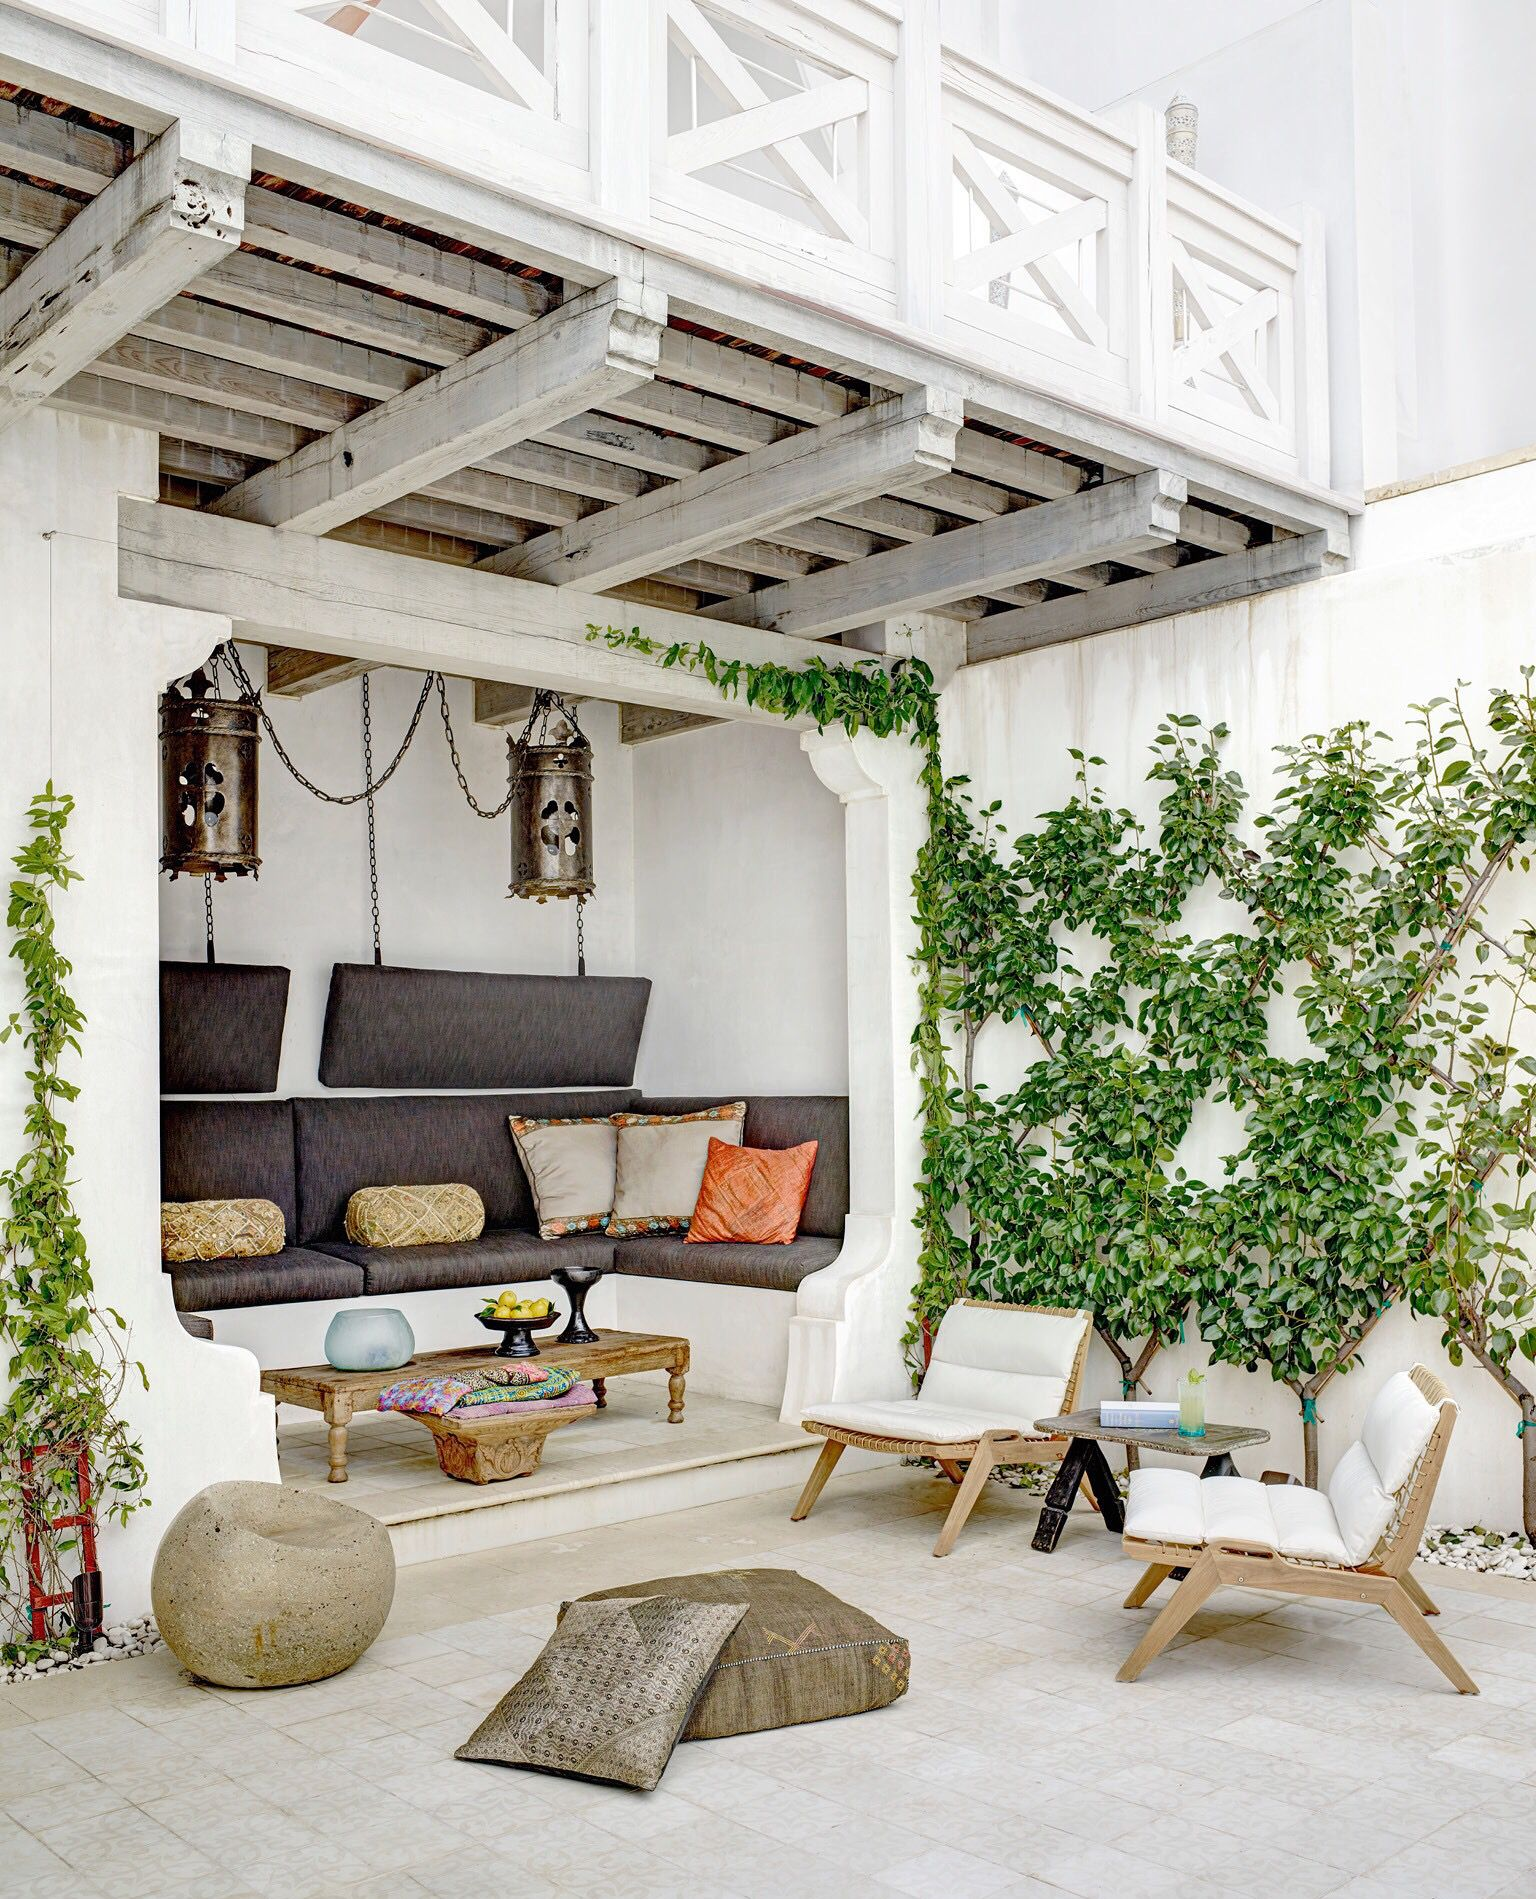 Amazing Moroccan terrace by Sardar Design Studio as seen in Architectural  Digest May 2015 #white